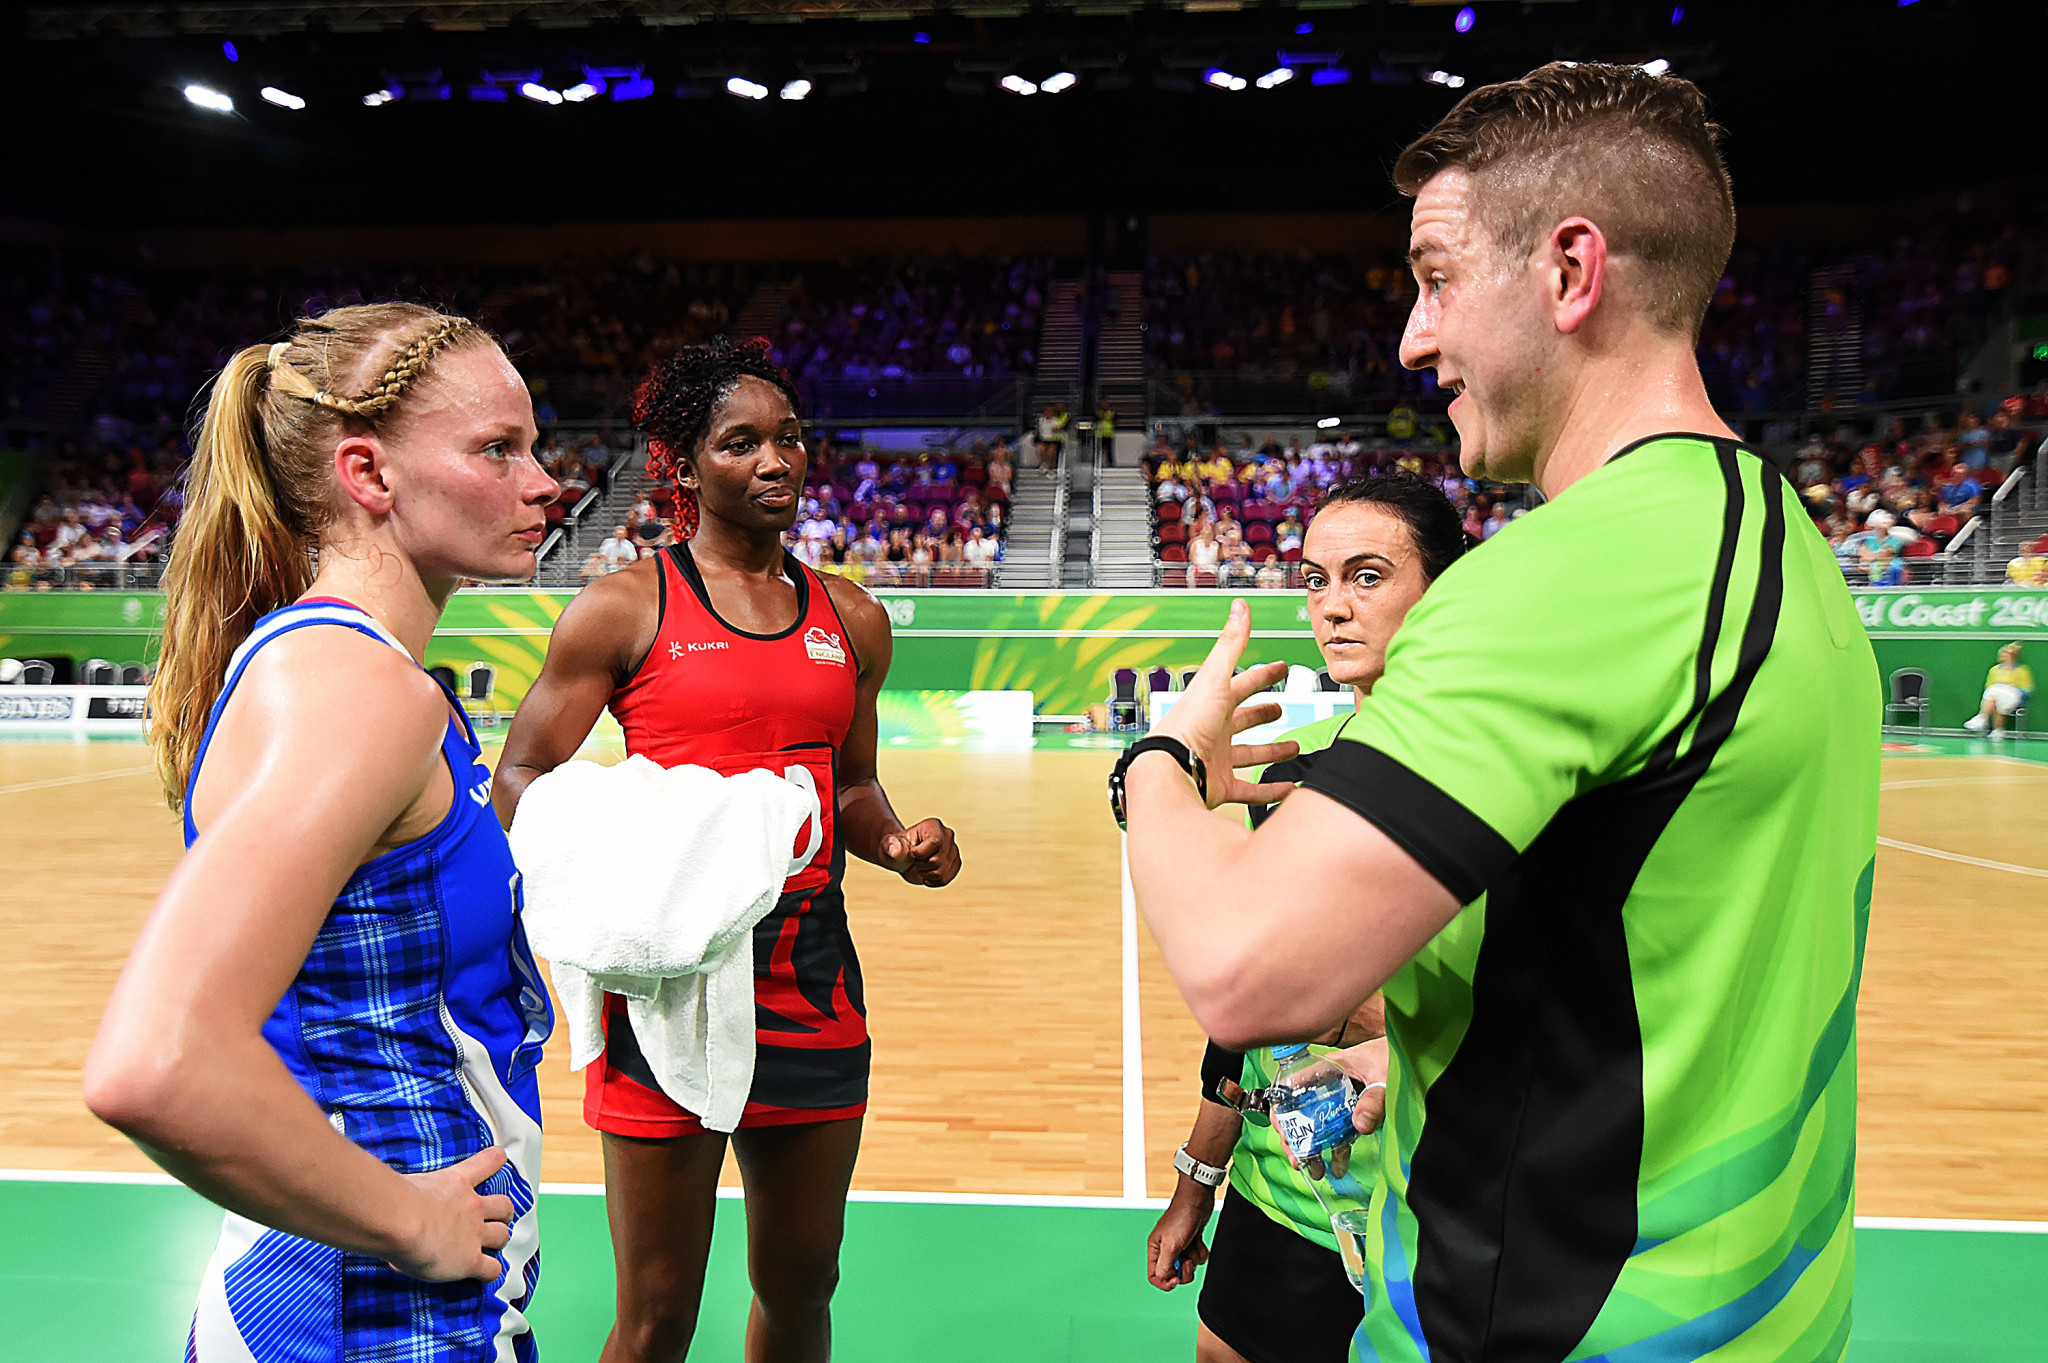 The International Netball Federation is working to improve its officiating ©INF